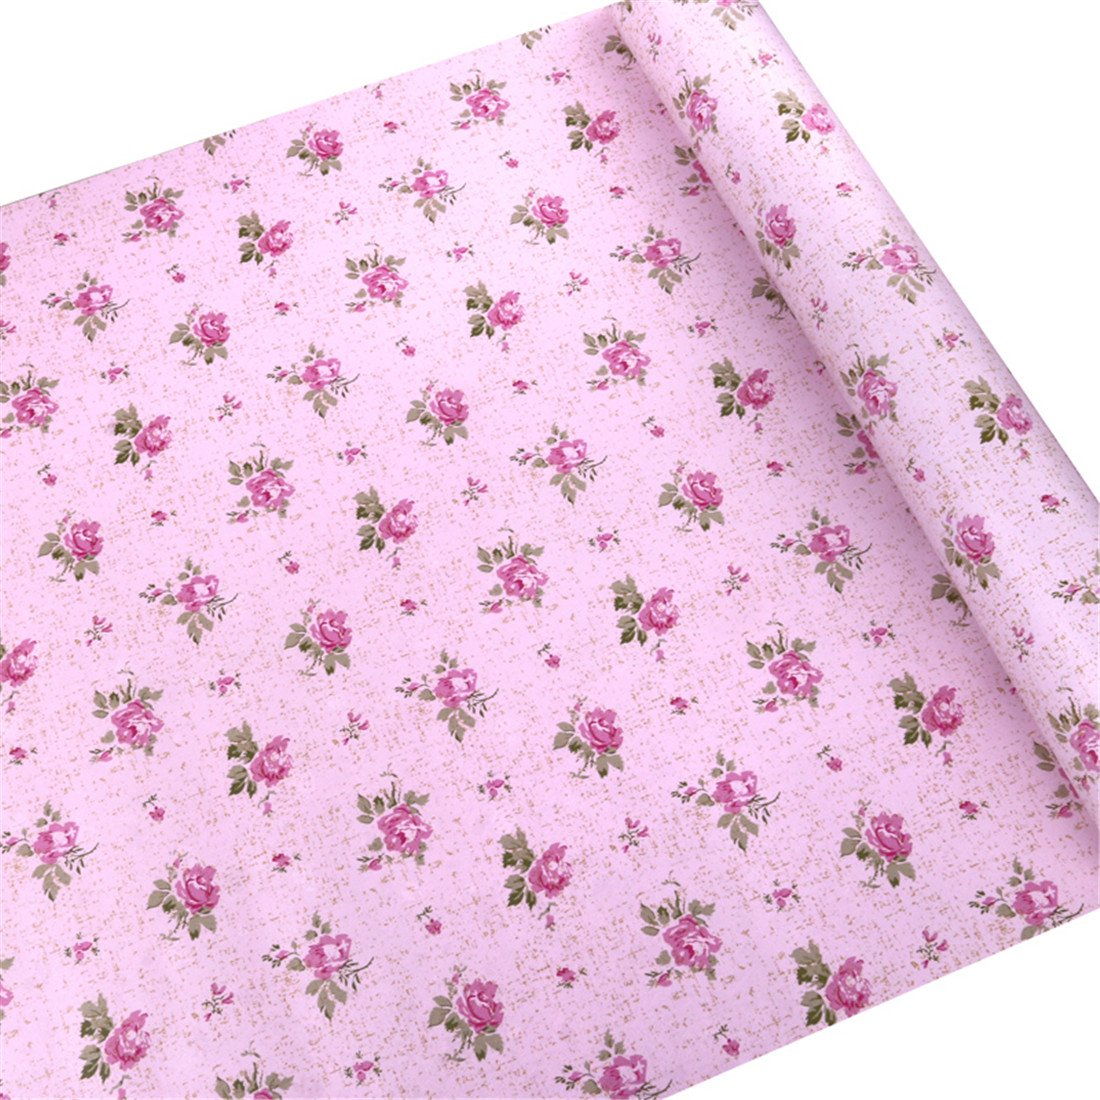 Vanyear Floral Decorative Contact Paper Self Adhesive Shelf Liner Home Kid's Room Decor 17x118 Inch